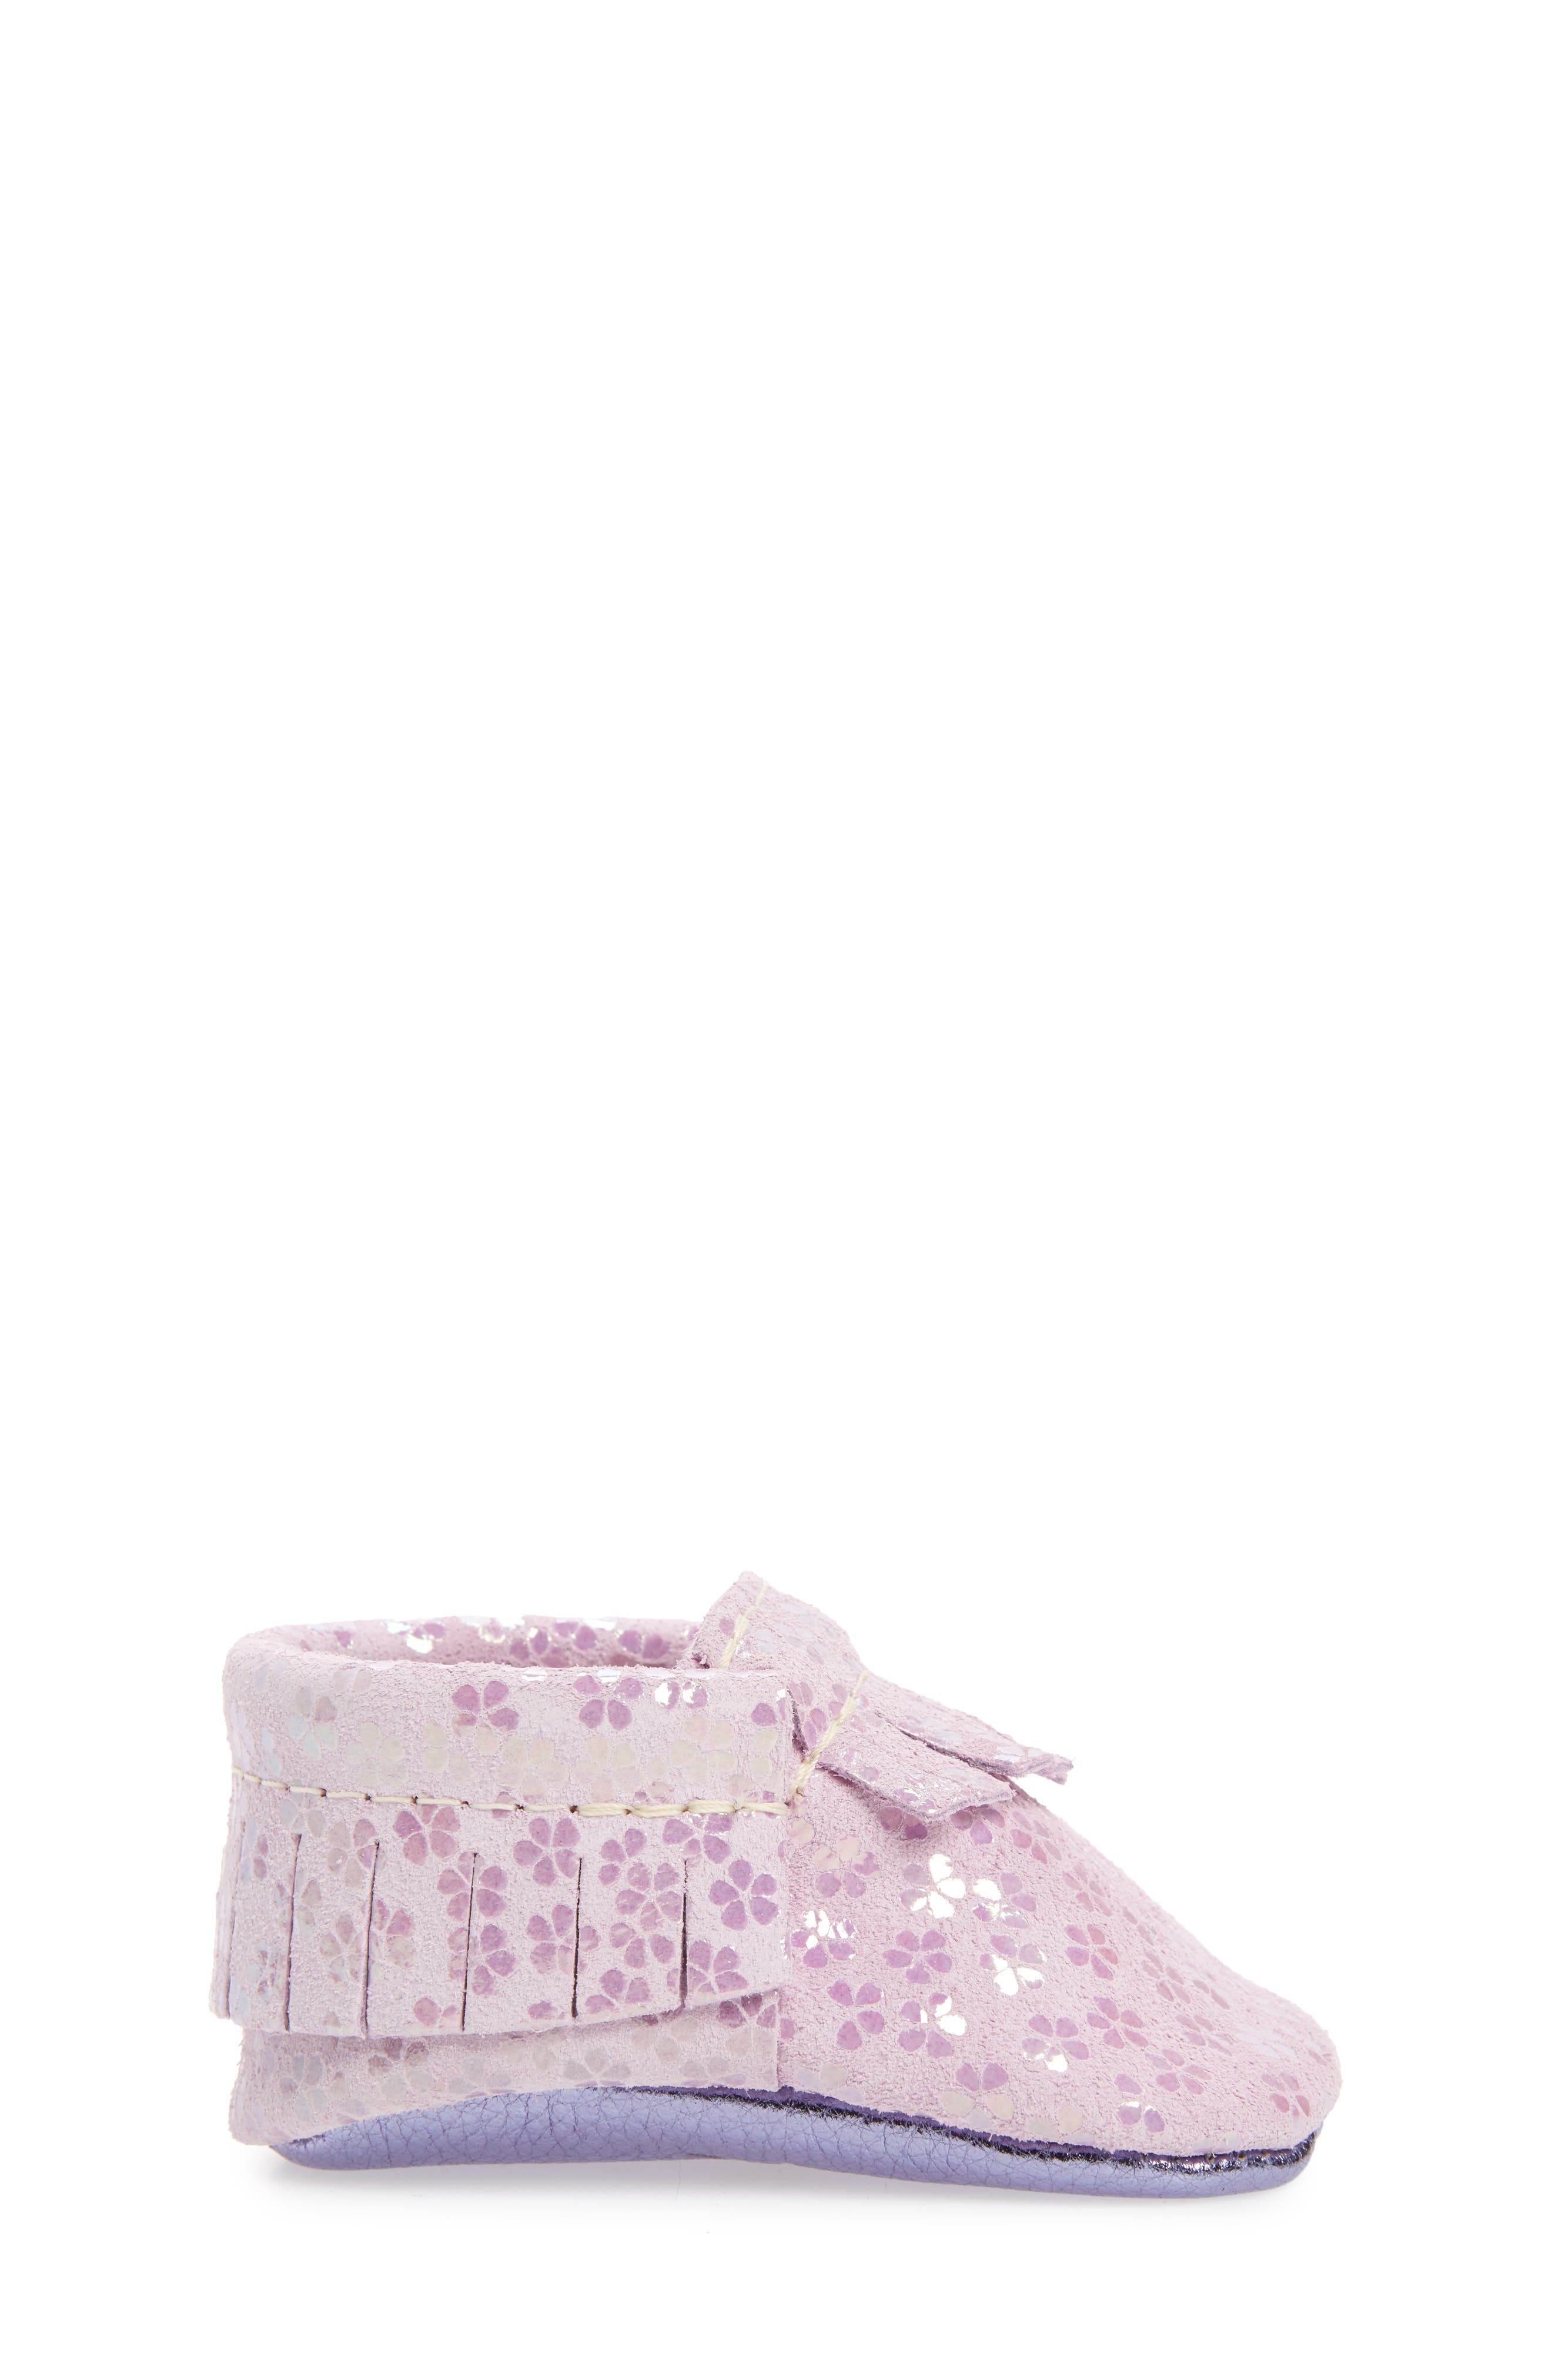 Lilac Blossom Moccasin,                             Alternate thumbnail 3, color,                             Lilac Blossom